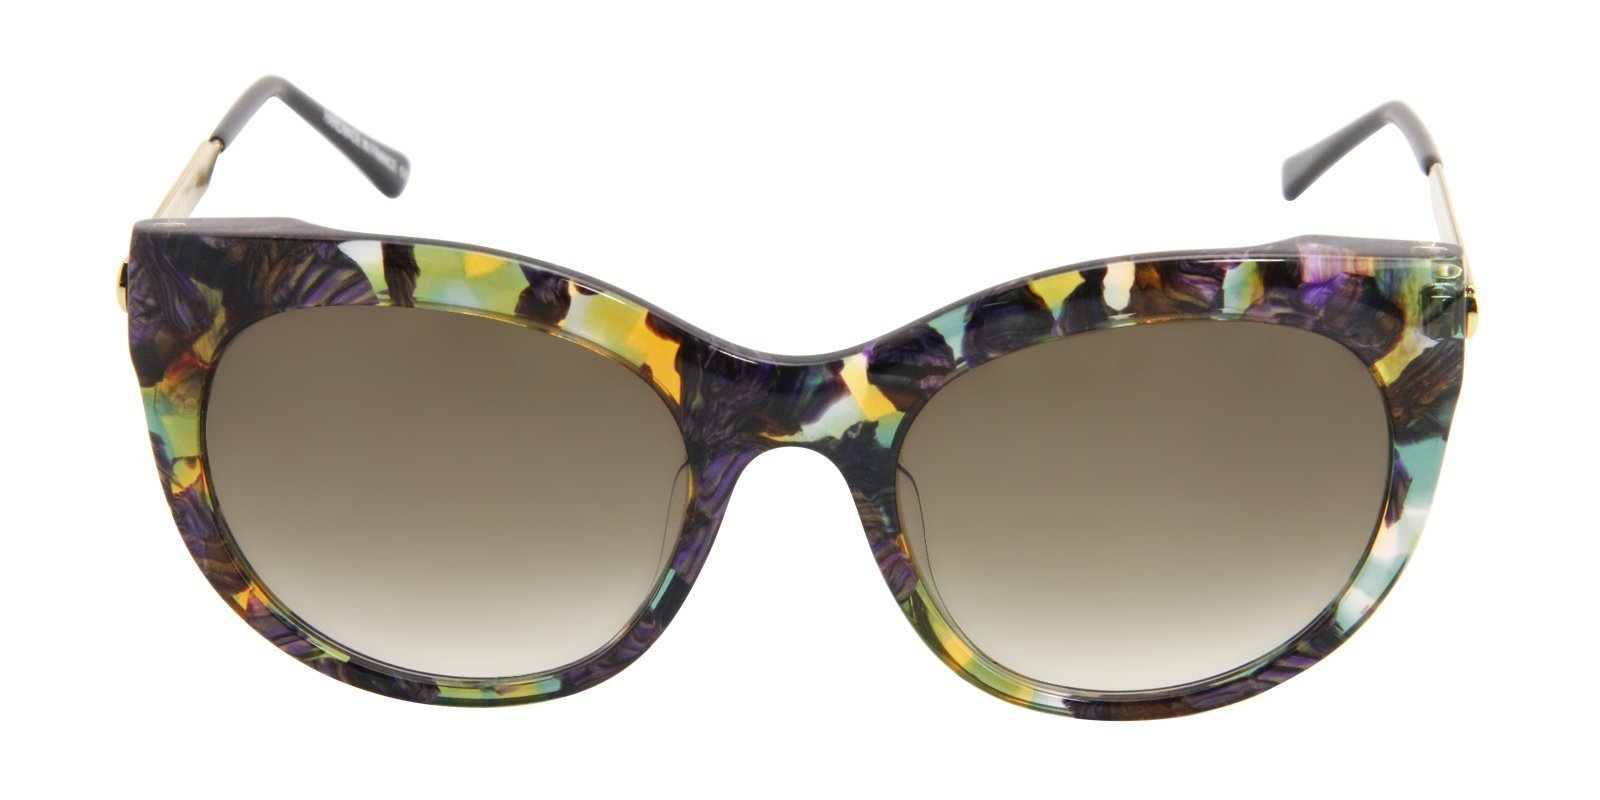 Thierry Lasry - Glitzy Brown Oval Women Sunglasses - 55mm-Sunglasses-Designer Eyes